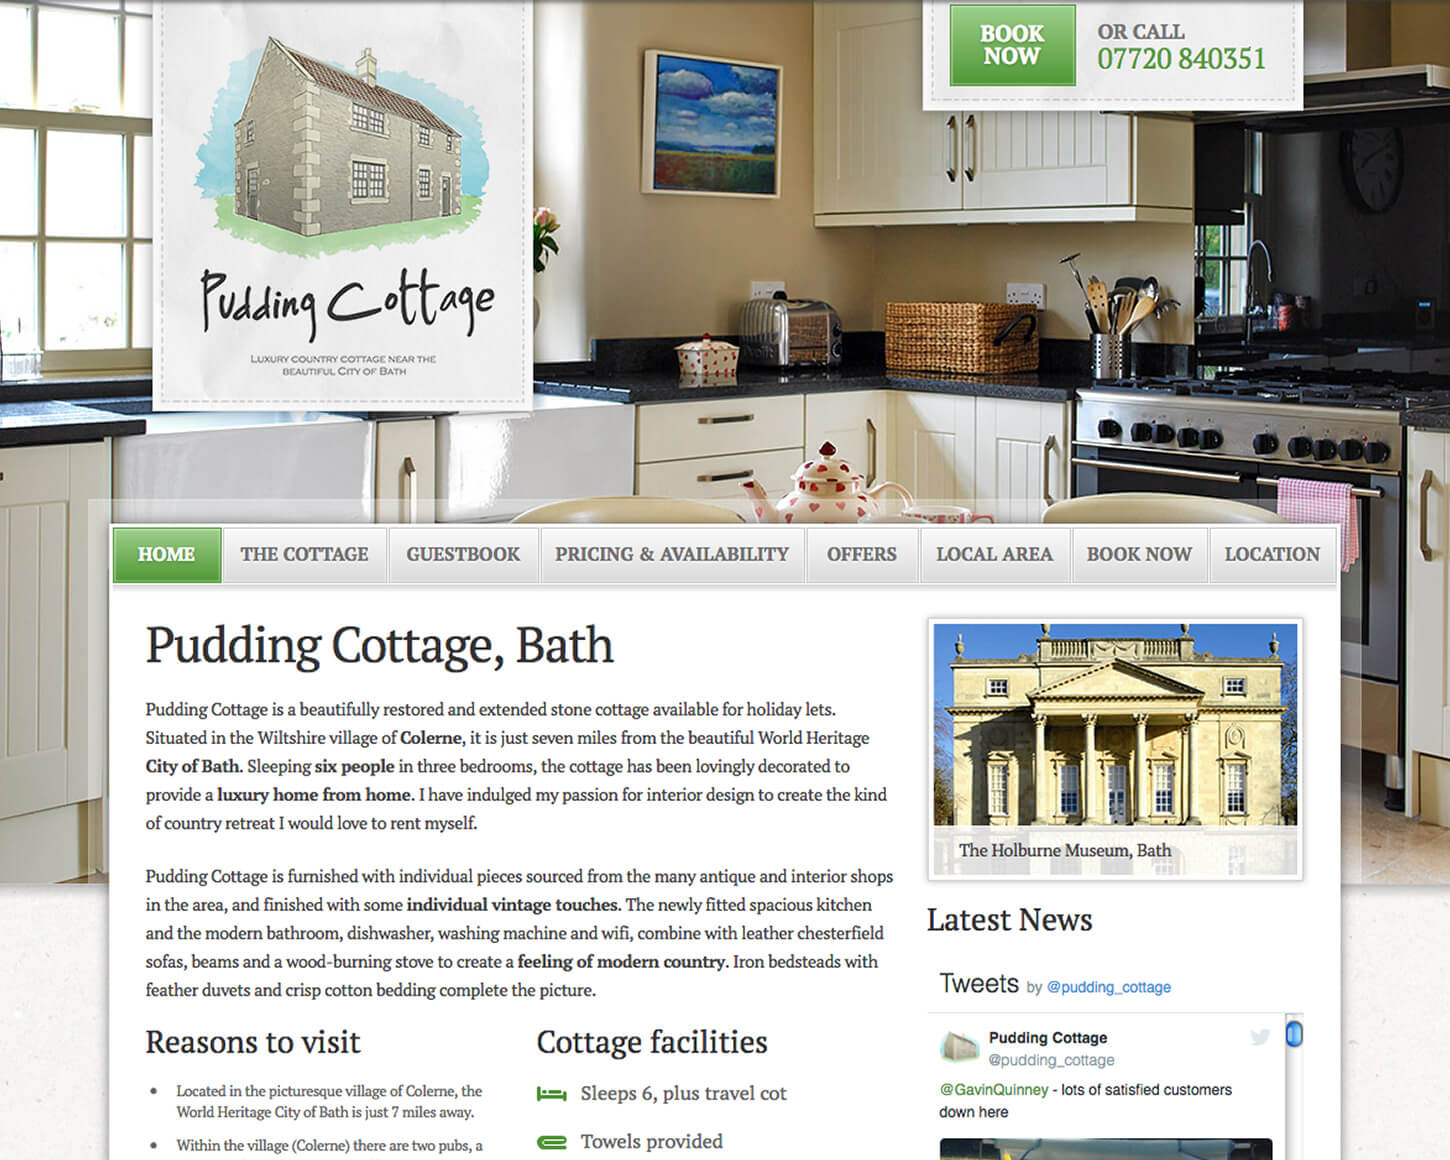 Pudding Cottage website